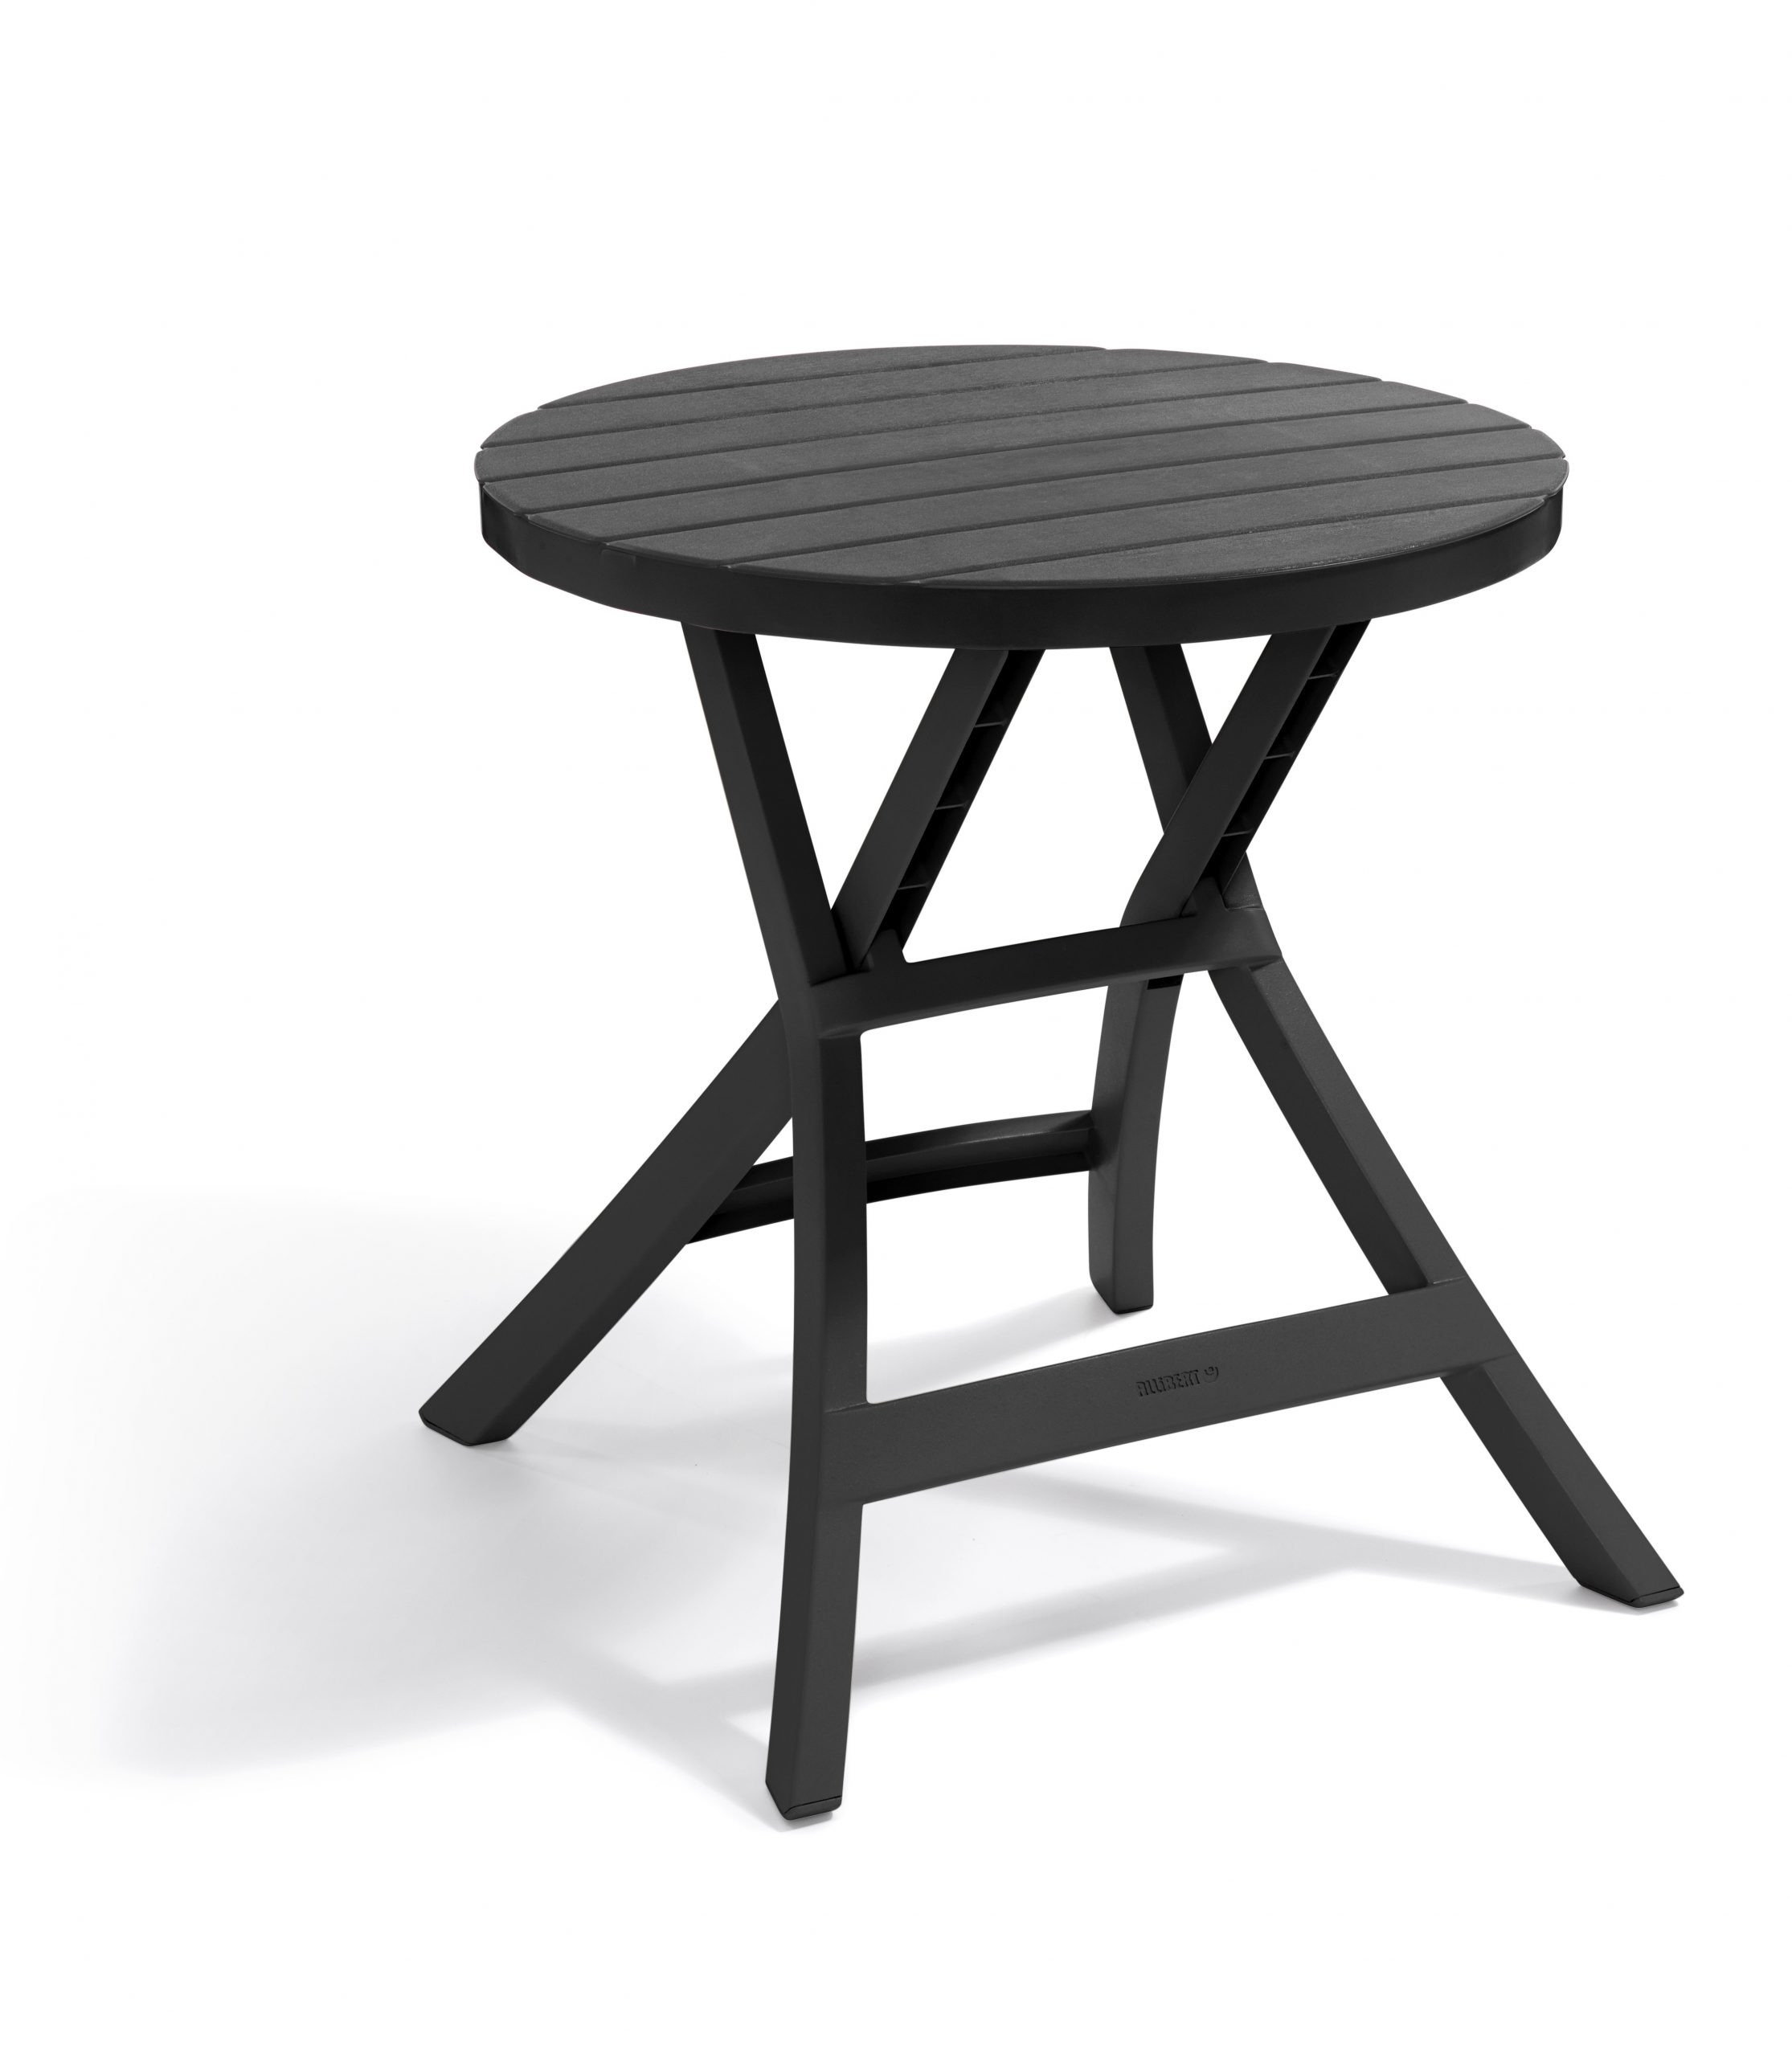 Table De Jardin Pliante Oregon 70 X 70 X 72 Cm Allibert - Mr.bricolage concernant Table De Jardin Allibert